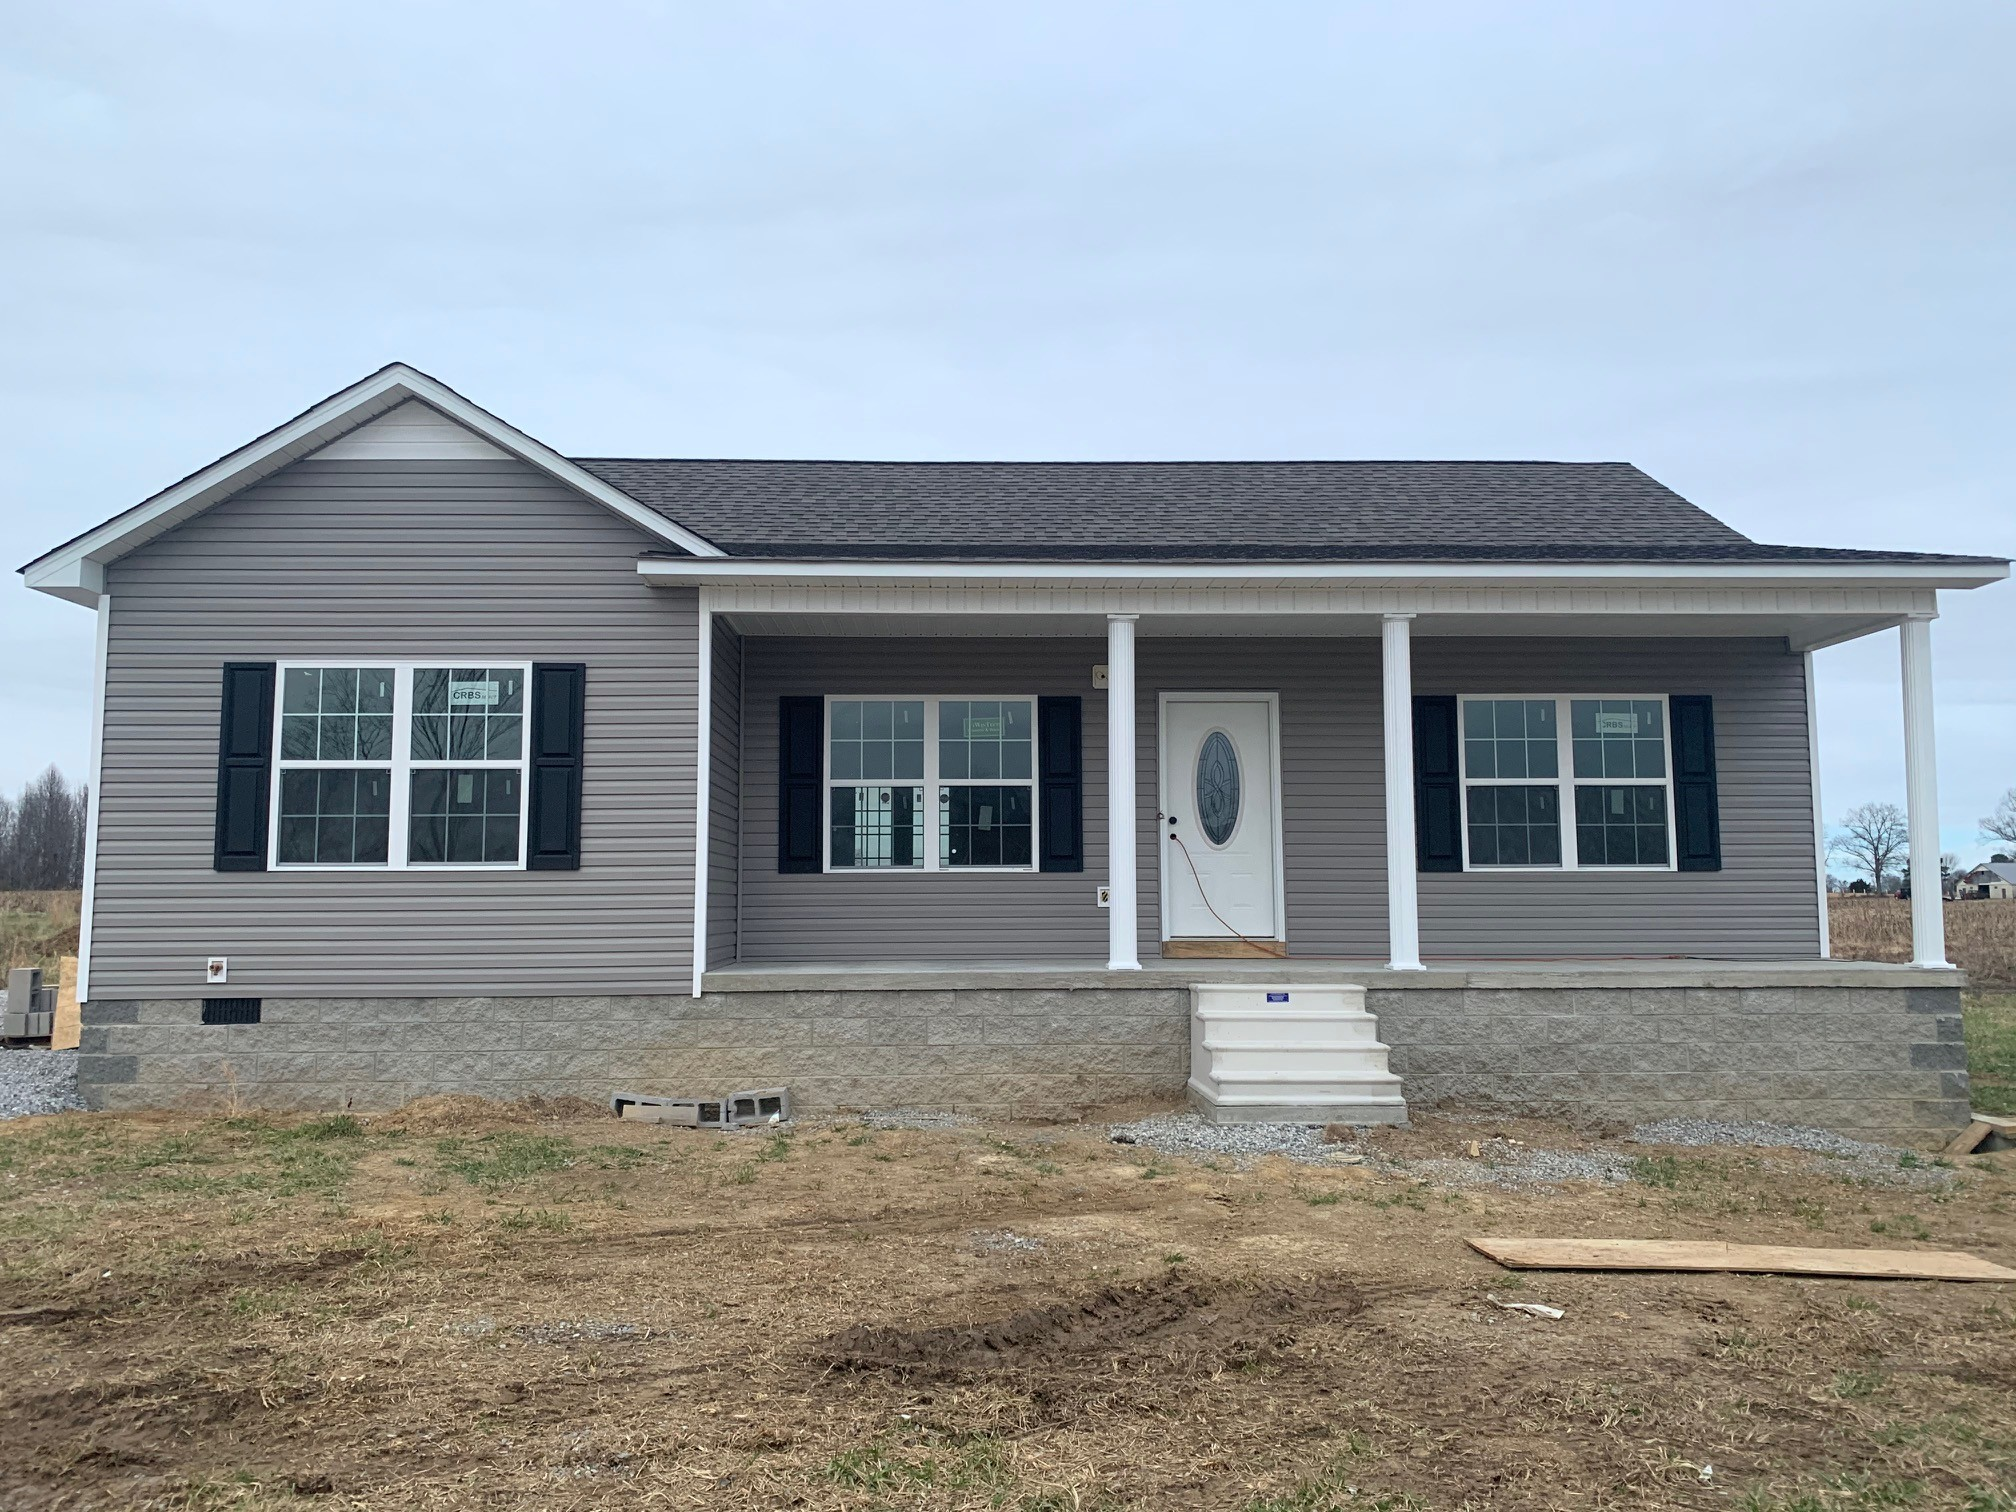 170 Michael Drive, Leoma, TN 38468 - Leoma, TN real estate listing